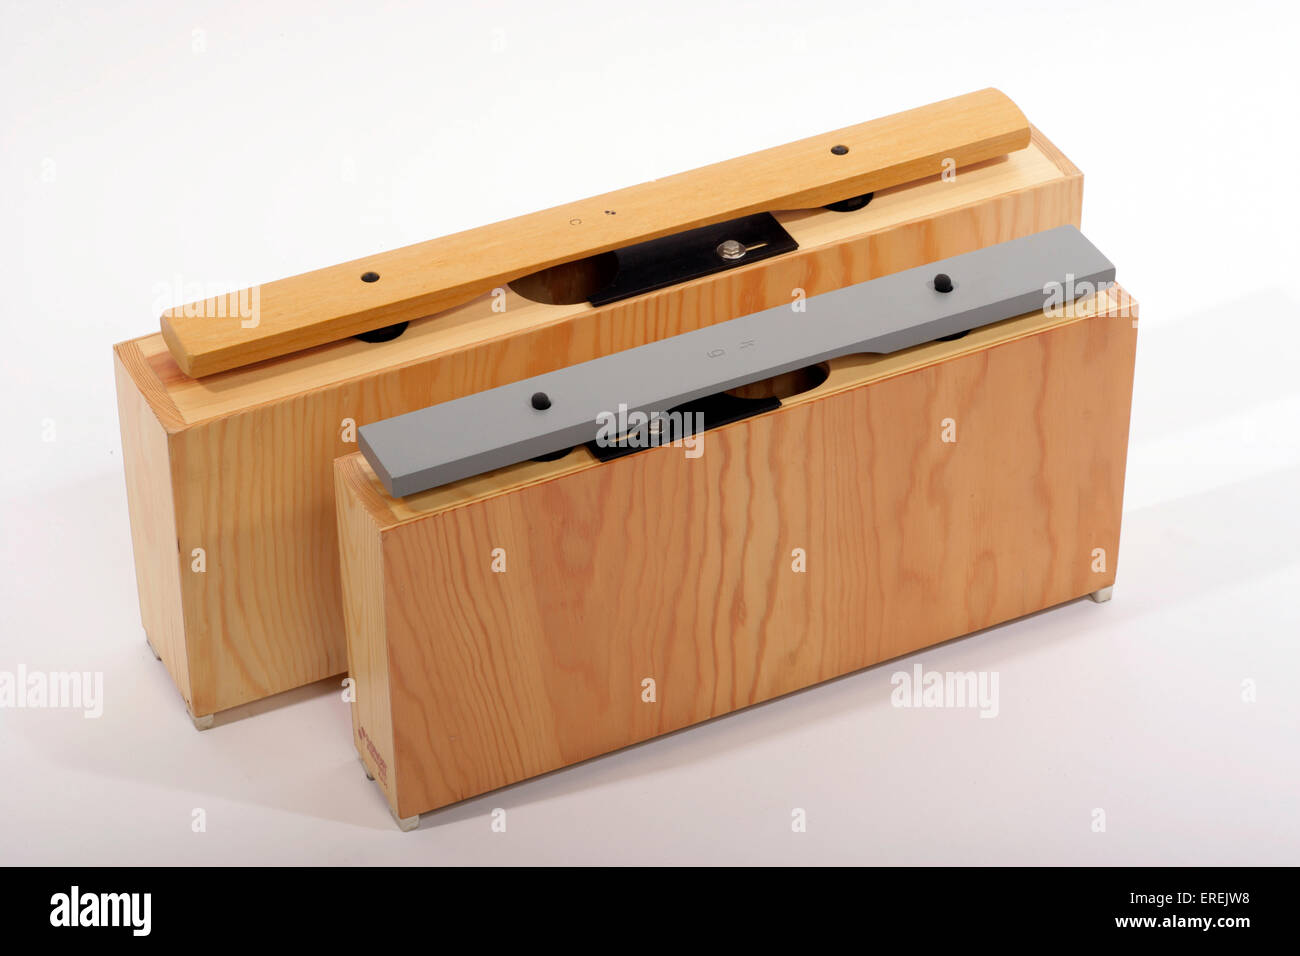 Large Bass Chime Bar And Wooden Marimba Note With Resonator Box